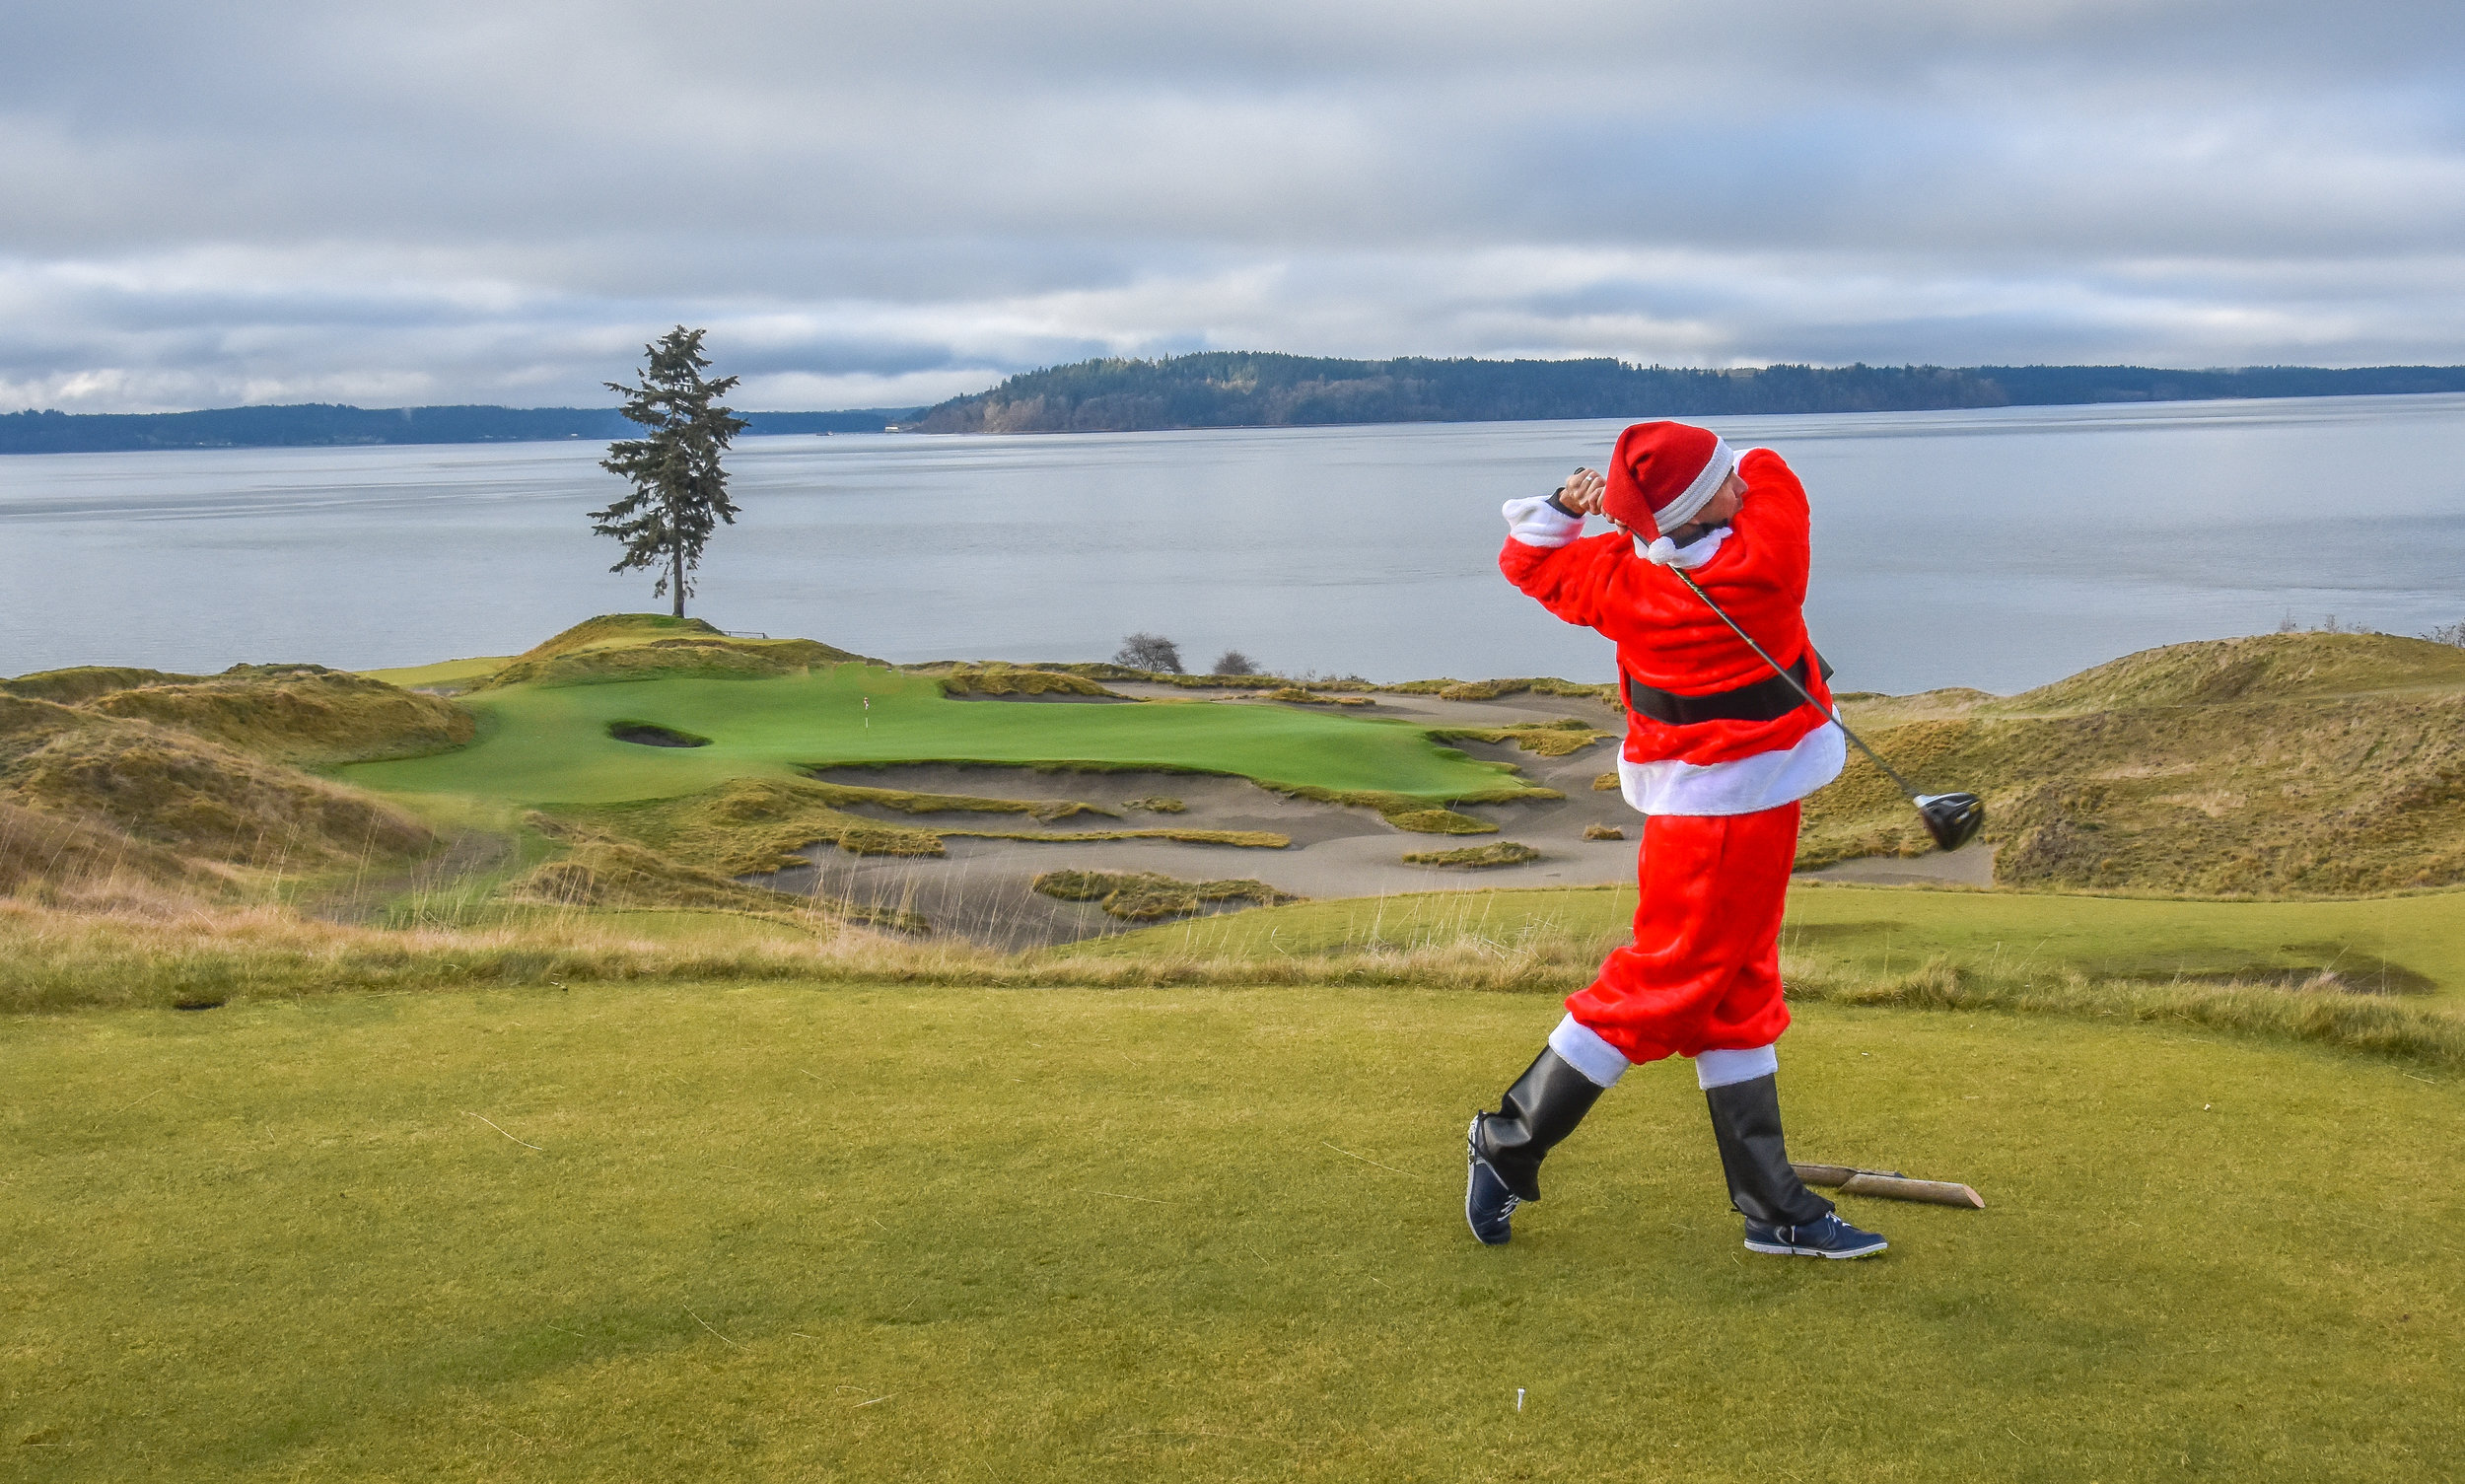 Santa goes for the green on the short par 4 12th as the 15th green lights up the background.